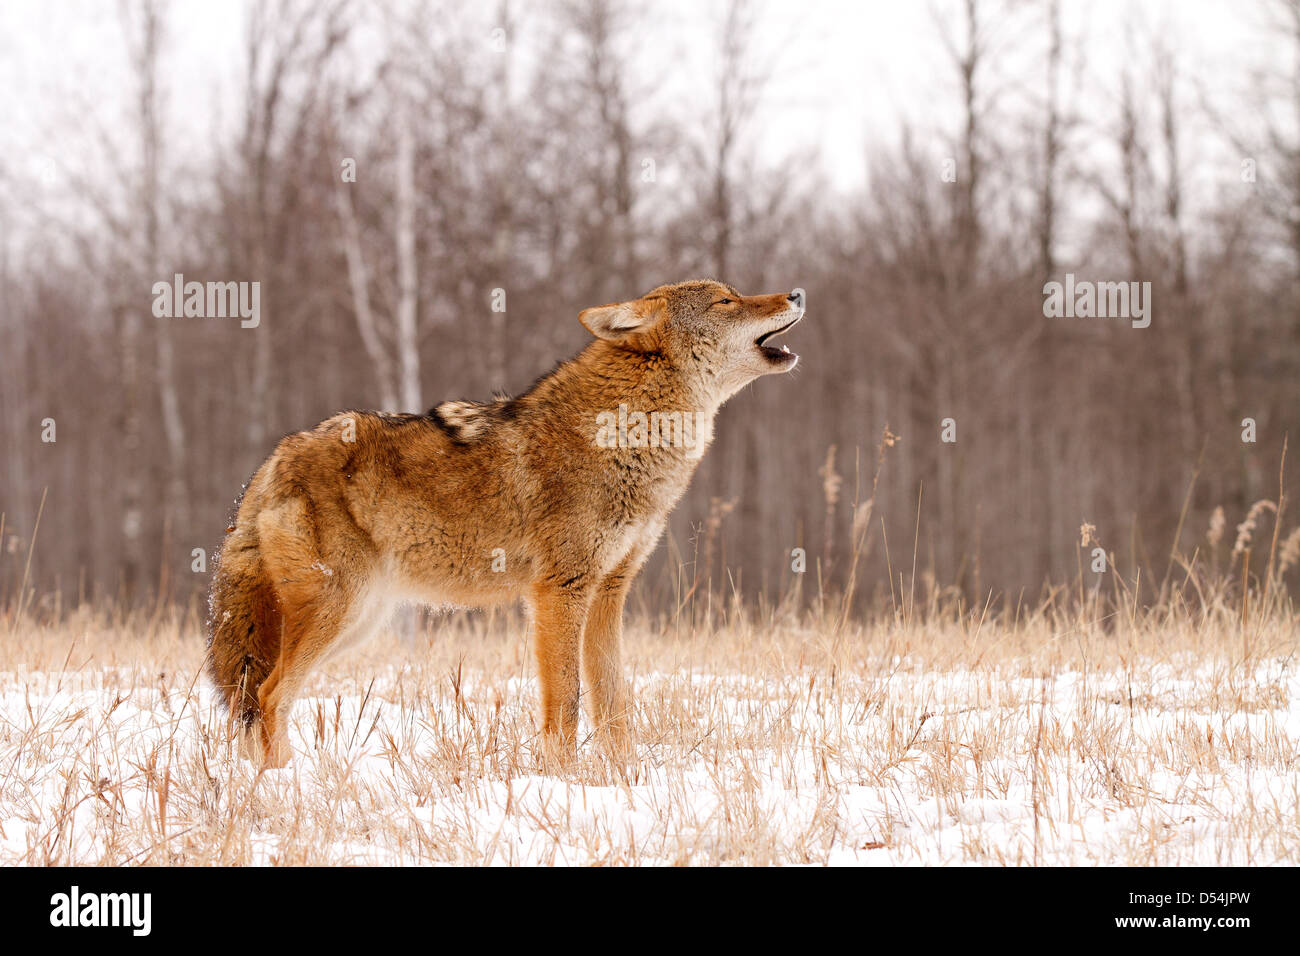 Coyote, Canis latrans howling in the snow - Stock Image